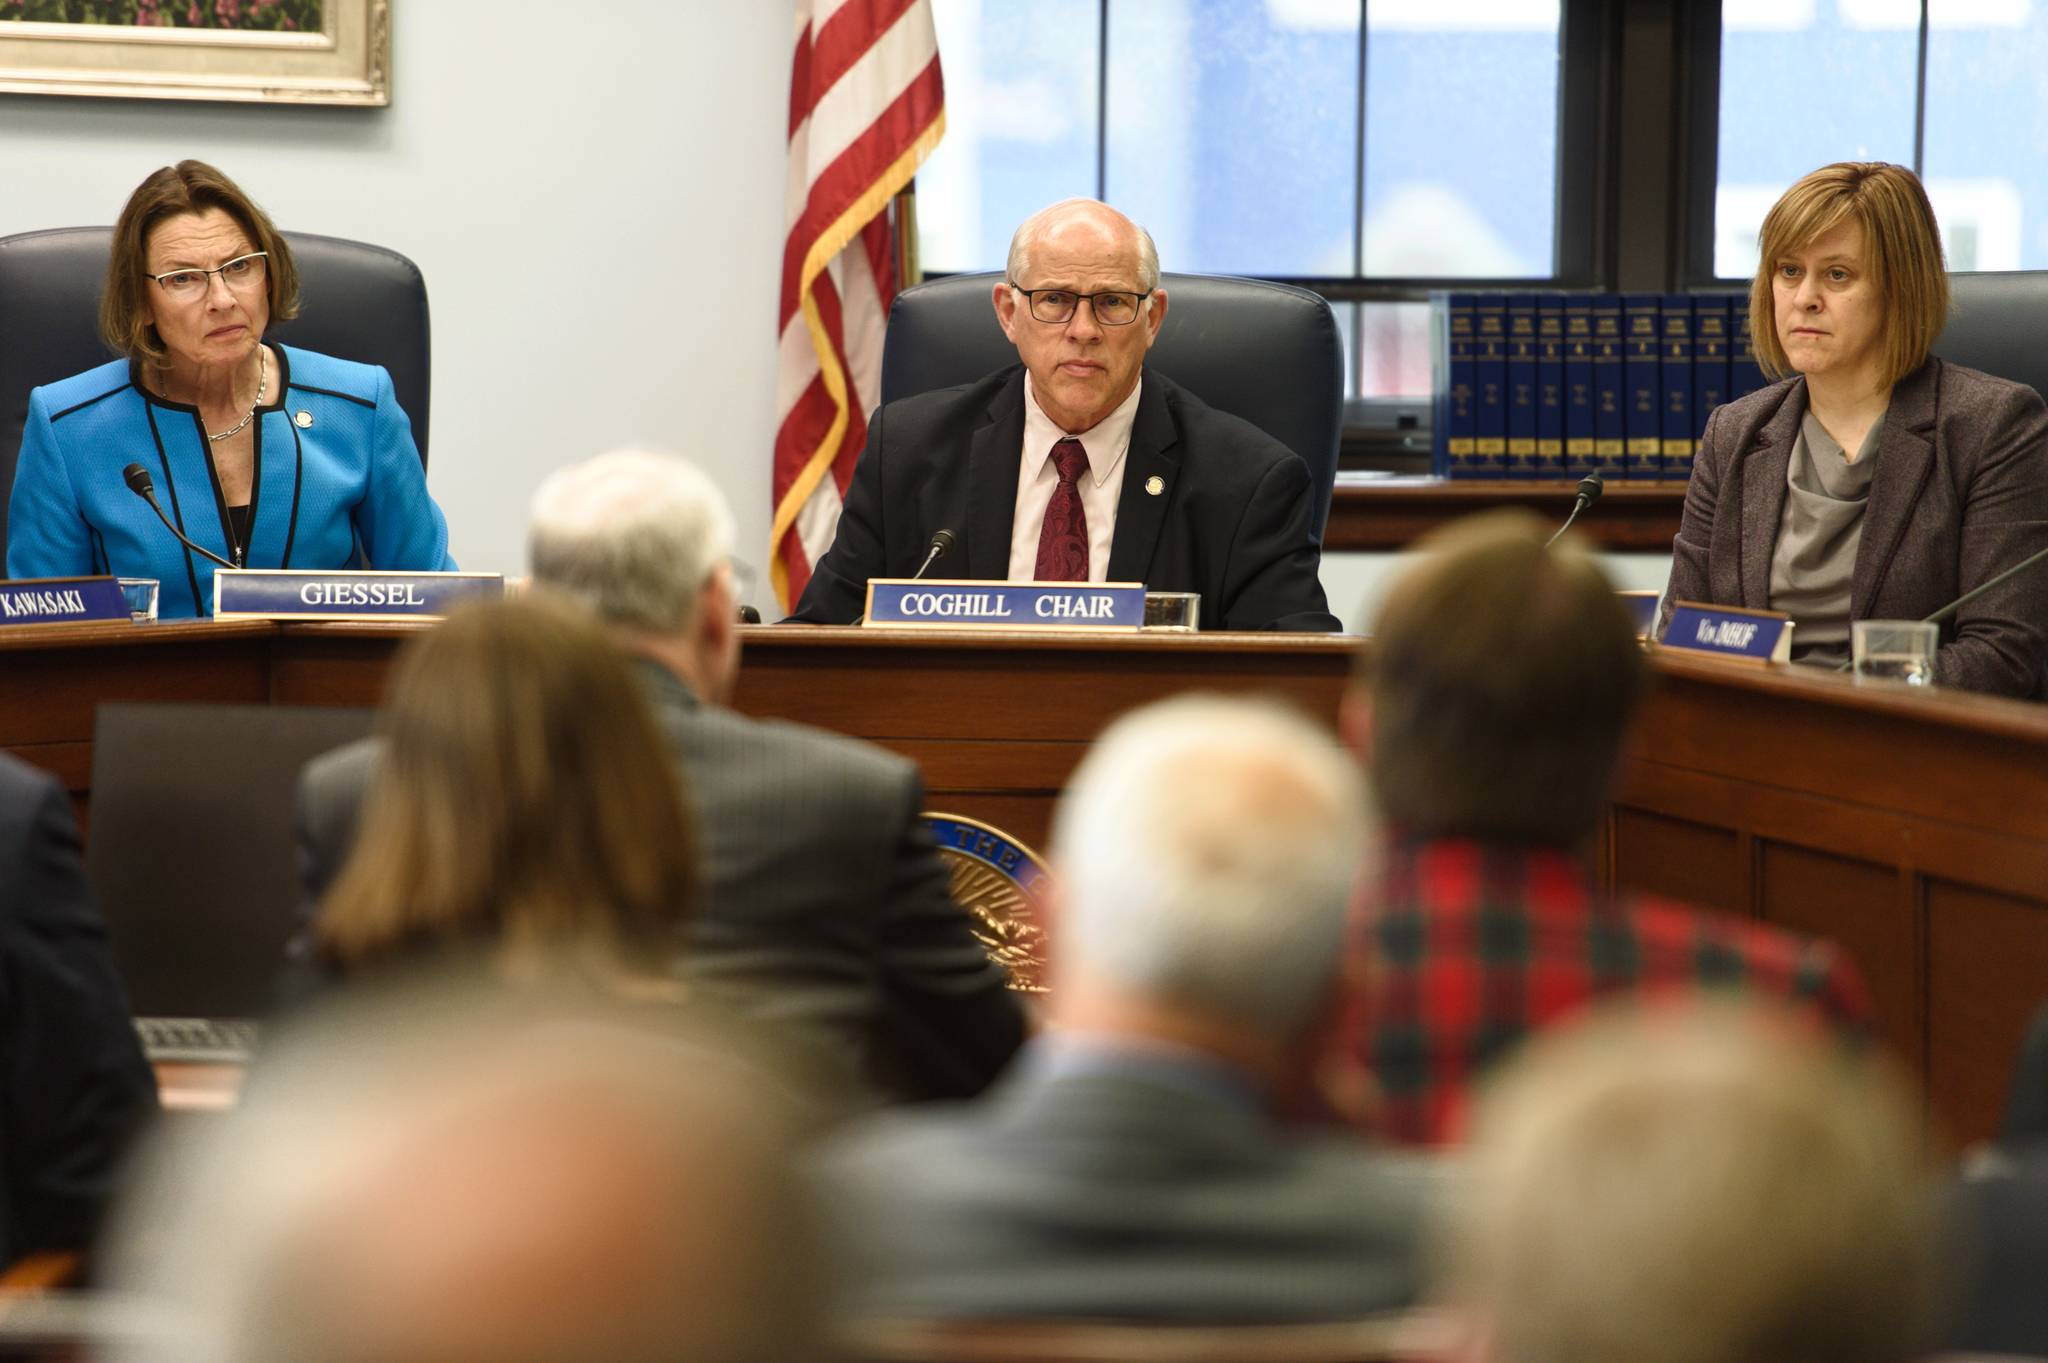 Sen. Cathy Giessel, R-Anchorage, left, Sen. John Coghill, R-North Pole, center, and Sen. Mia Costello, R-Anchorage, listen to Sen. Bert Stedman, R-Sitka, present SB 1002, a bill to provide a Permanent Fund Dividend of $1,600, to the Senate Rules Committee at the Capitol on Monday, June 3, 2019. (Michael Penn | Juneau Empire)